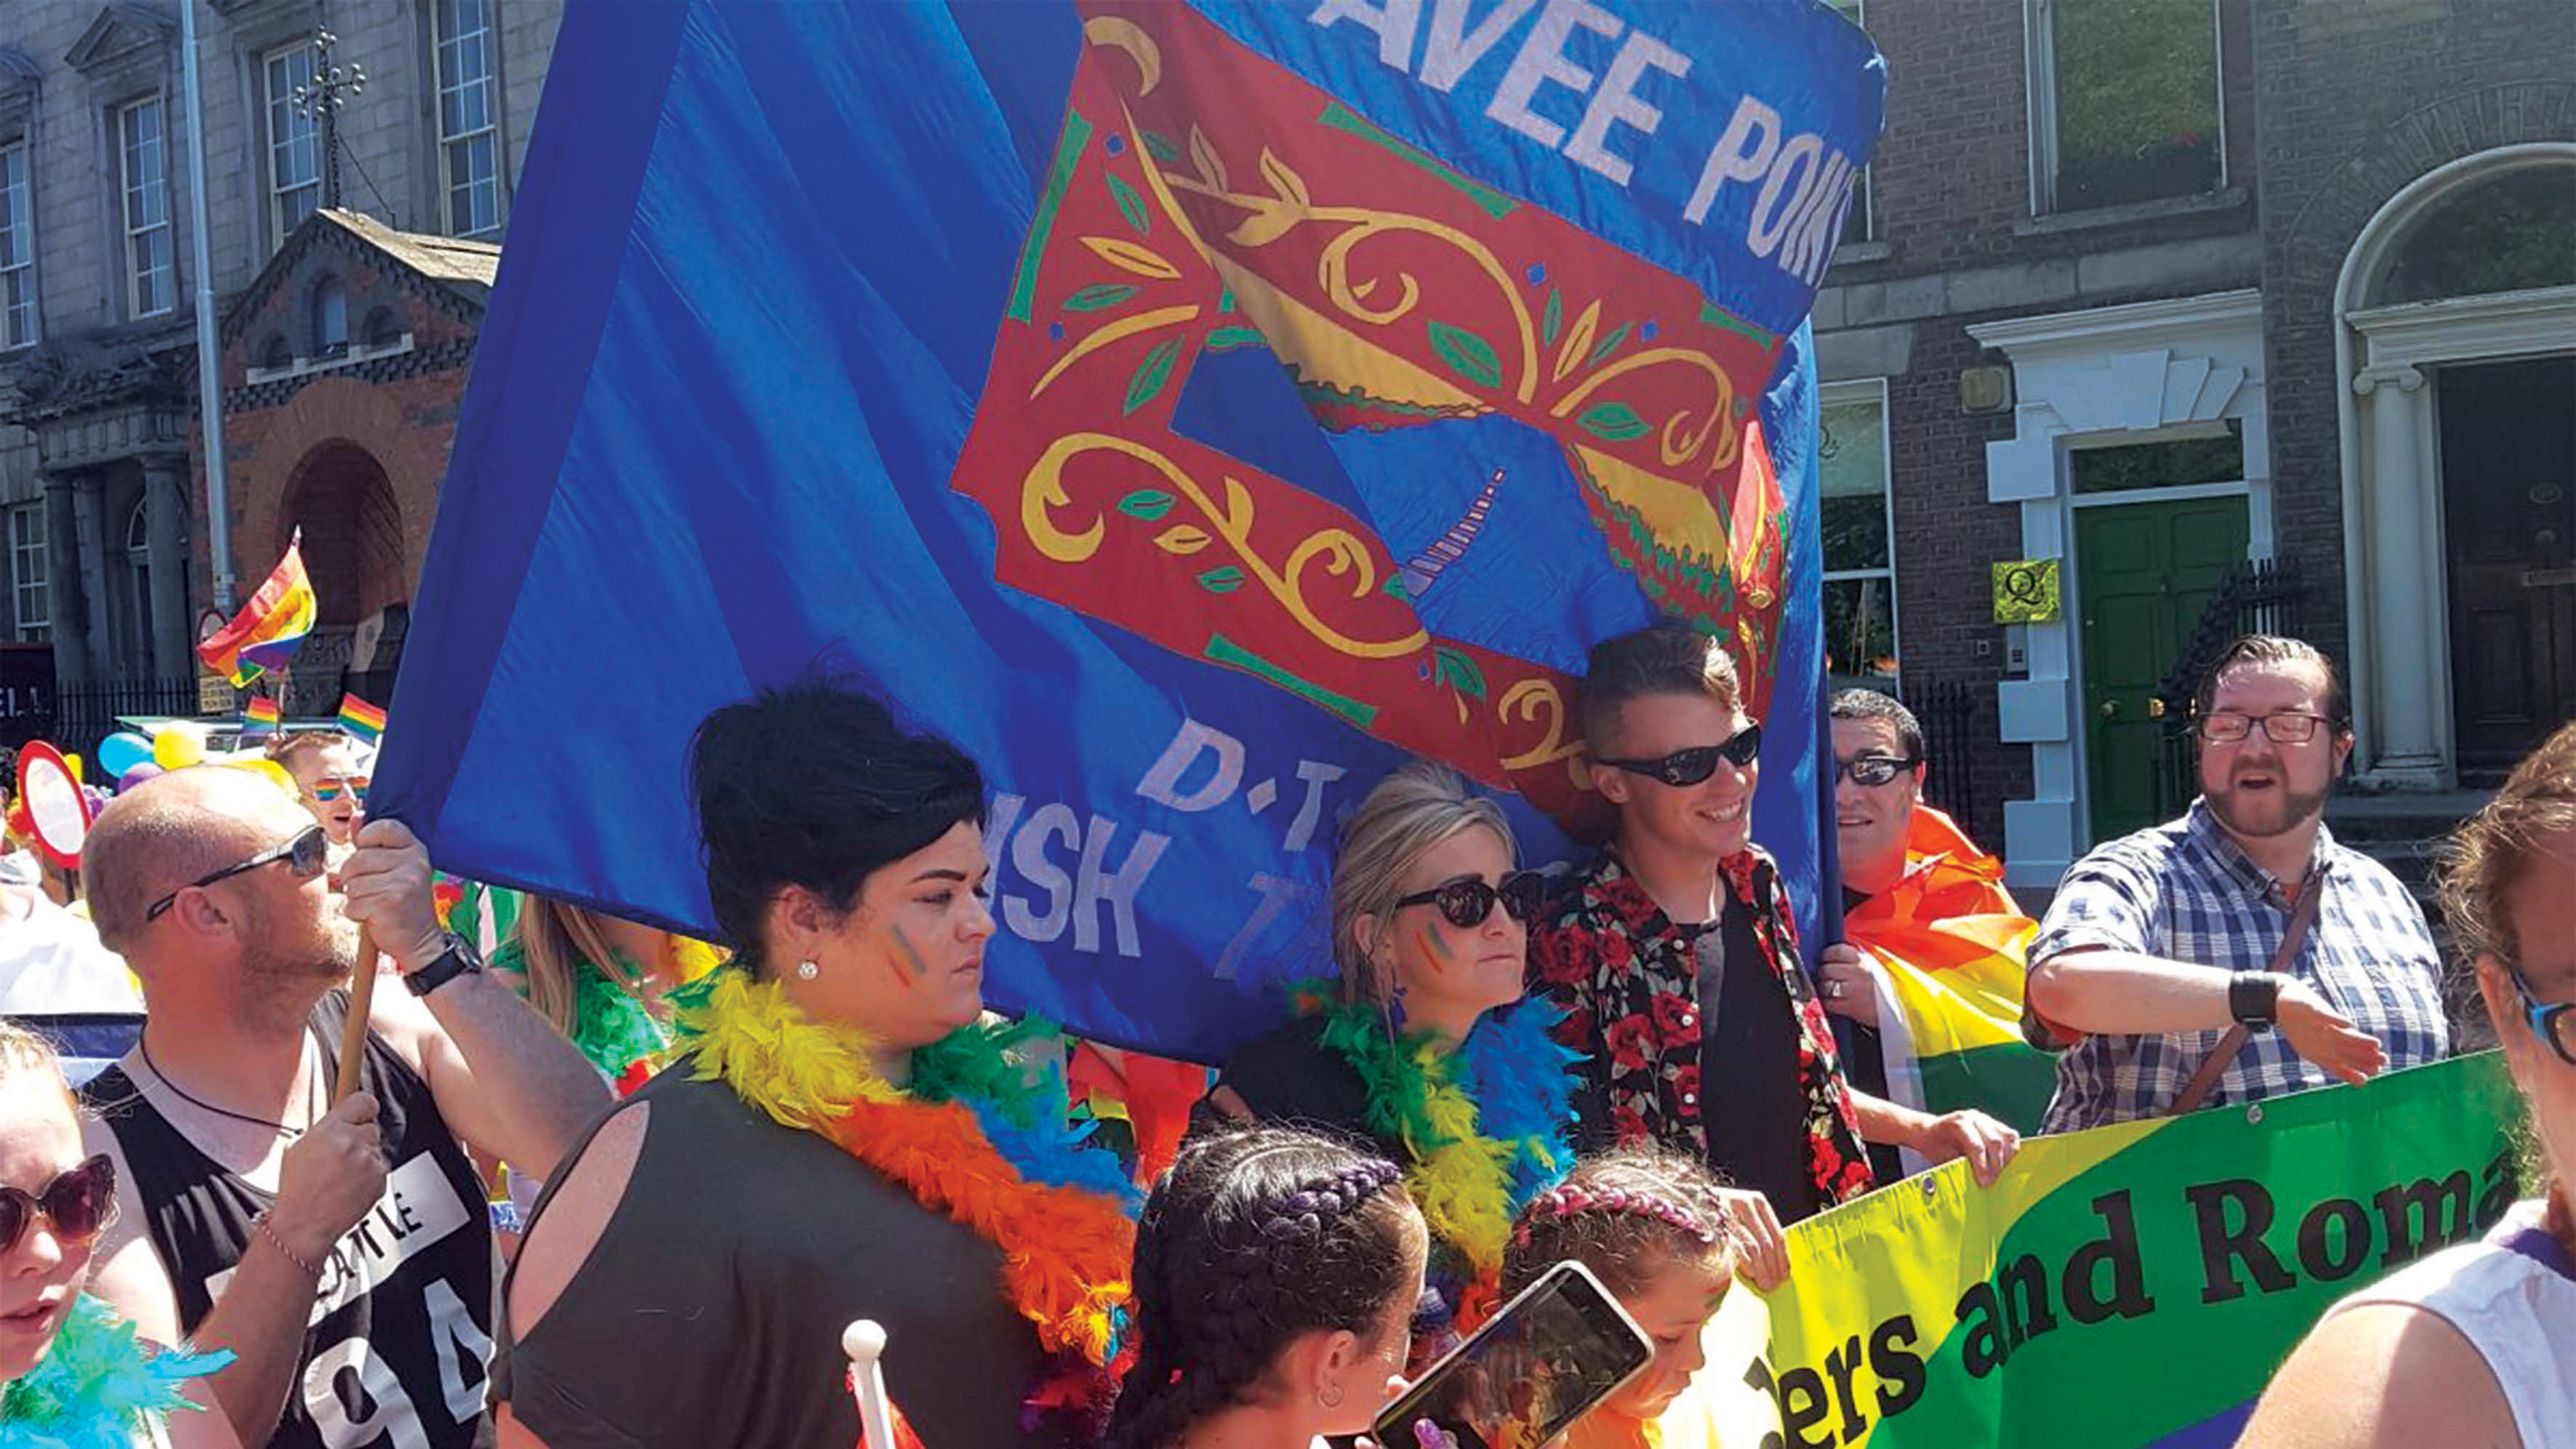 A group representing Pavee Point marching in Dublin Pride